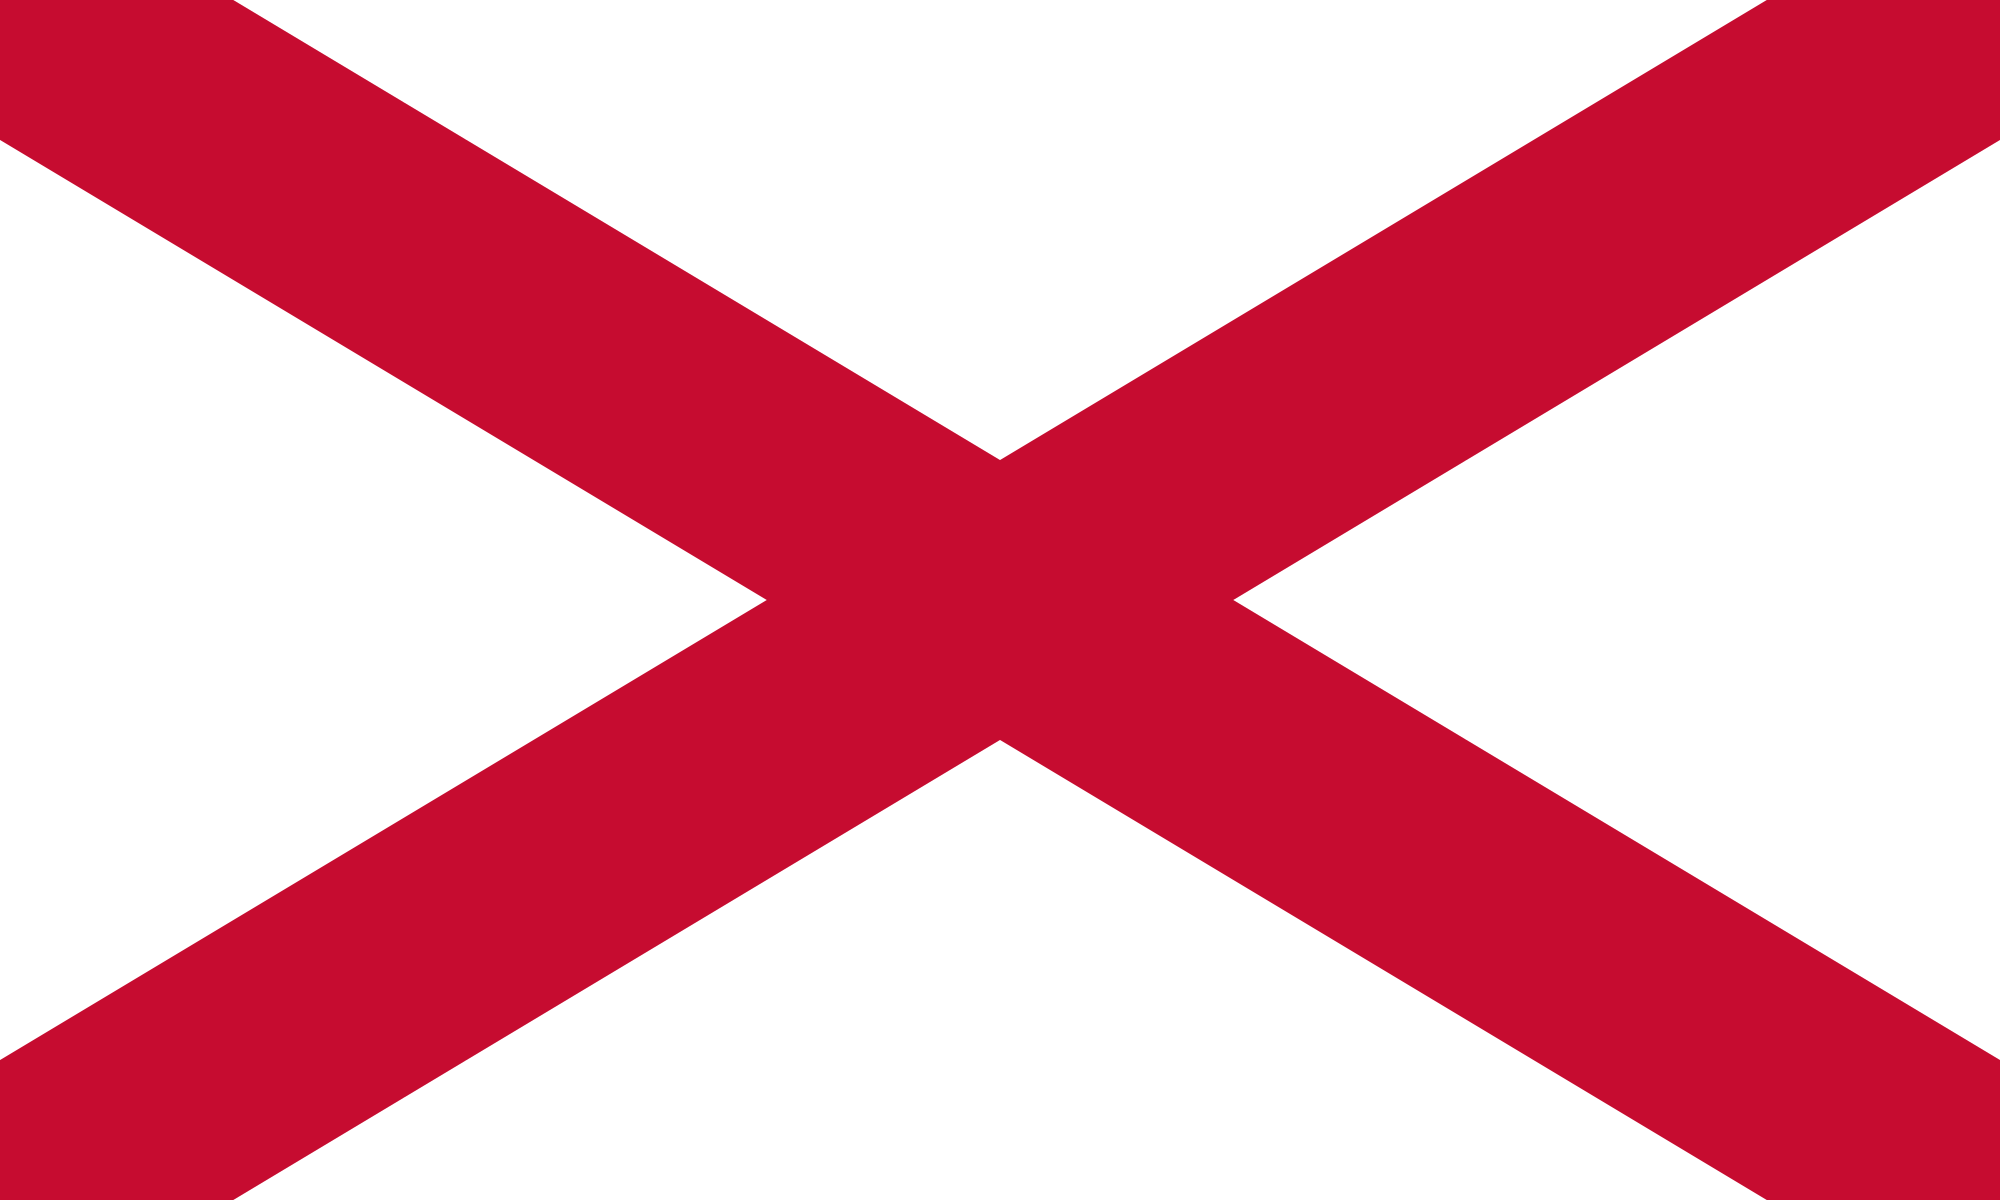 //freelance.shareplant.com/wp-content/uploads/2020/05/northern_ireland_flag.png